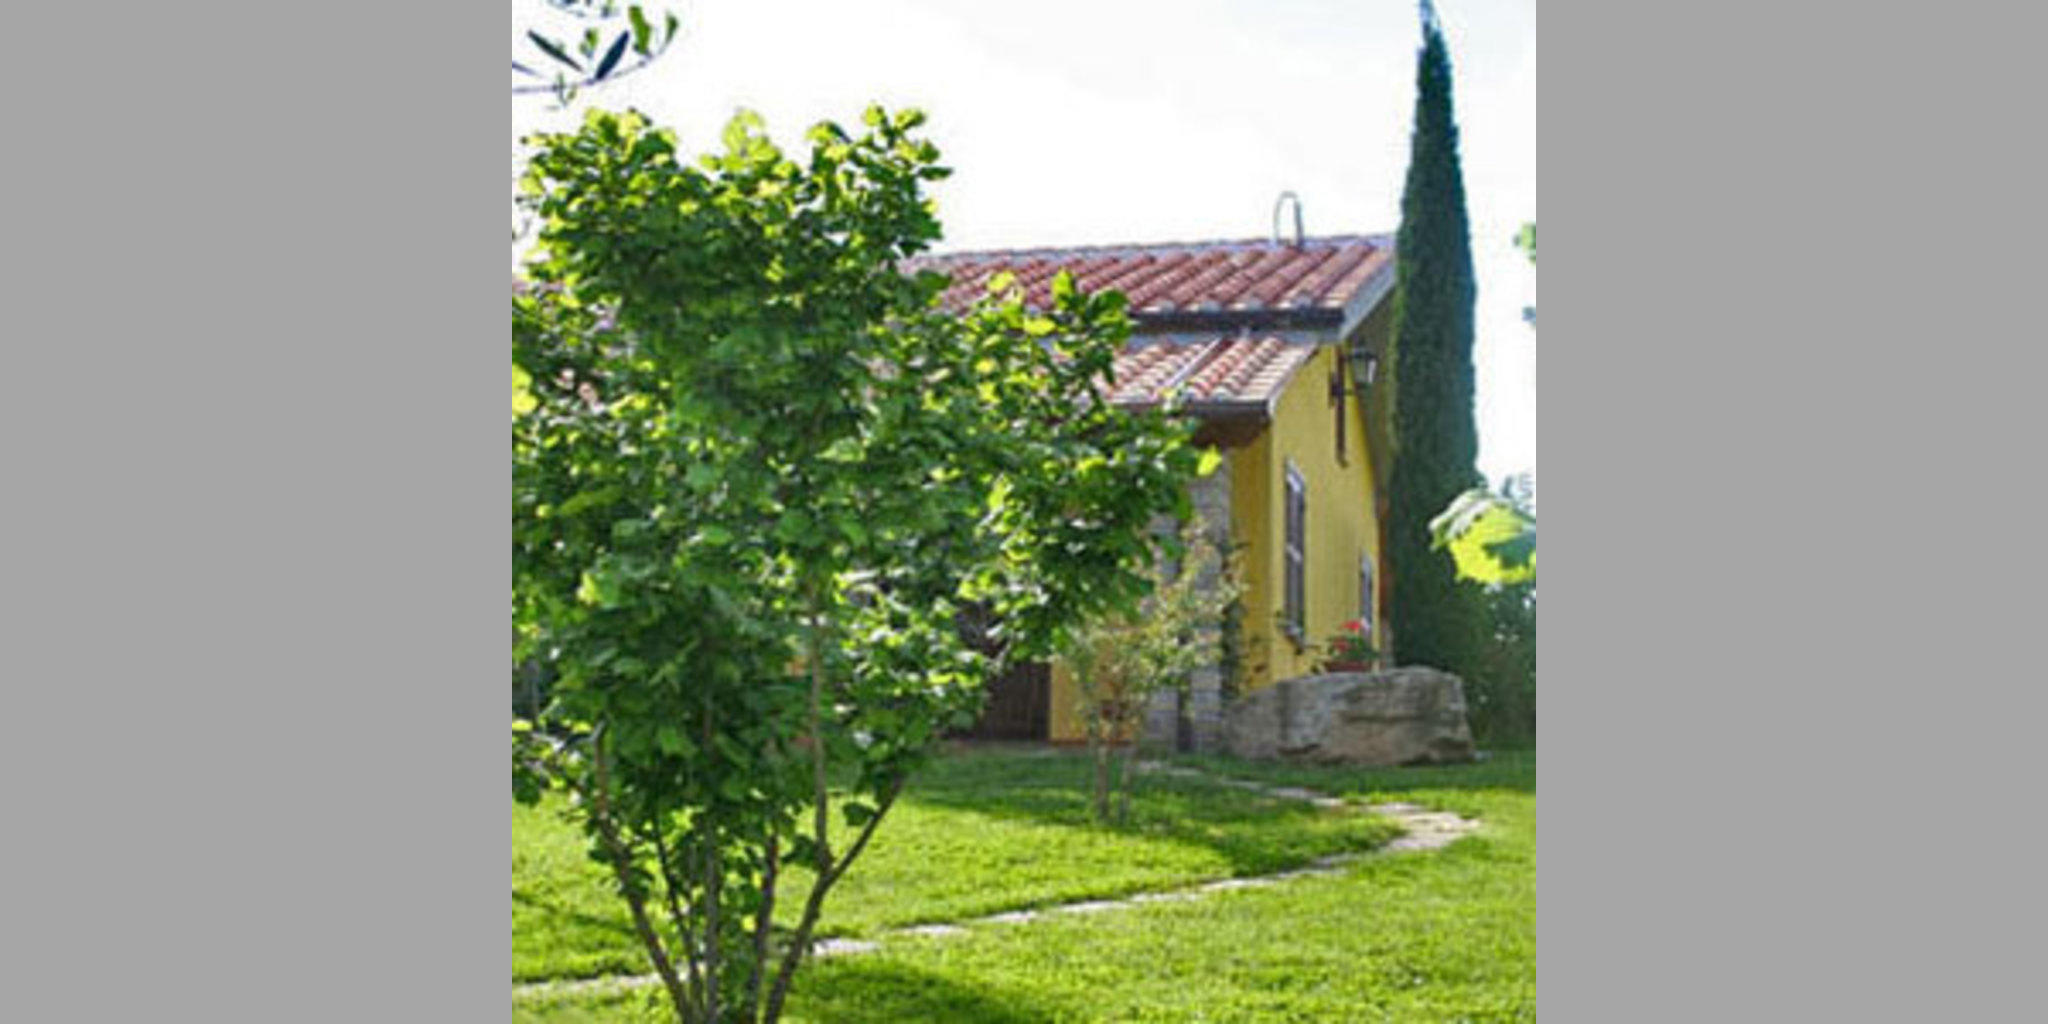 Bed & Breakfast Capranica - Campo Spinella Snc